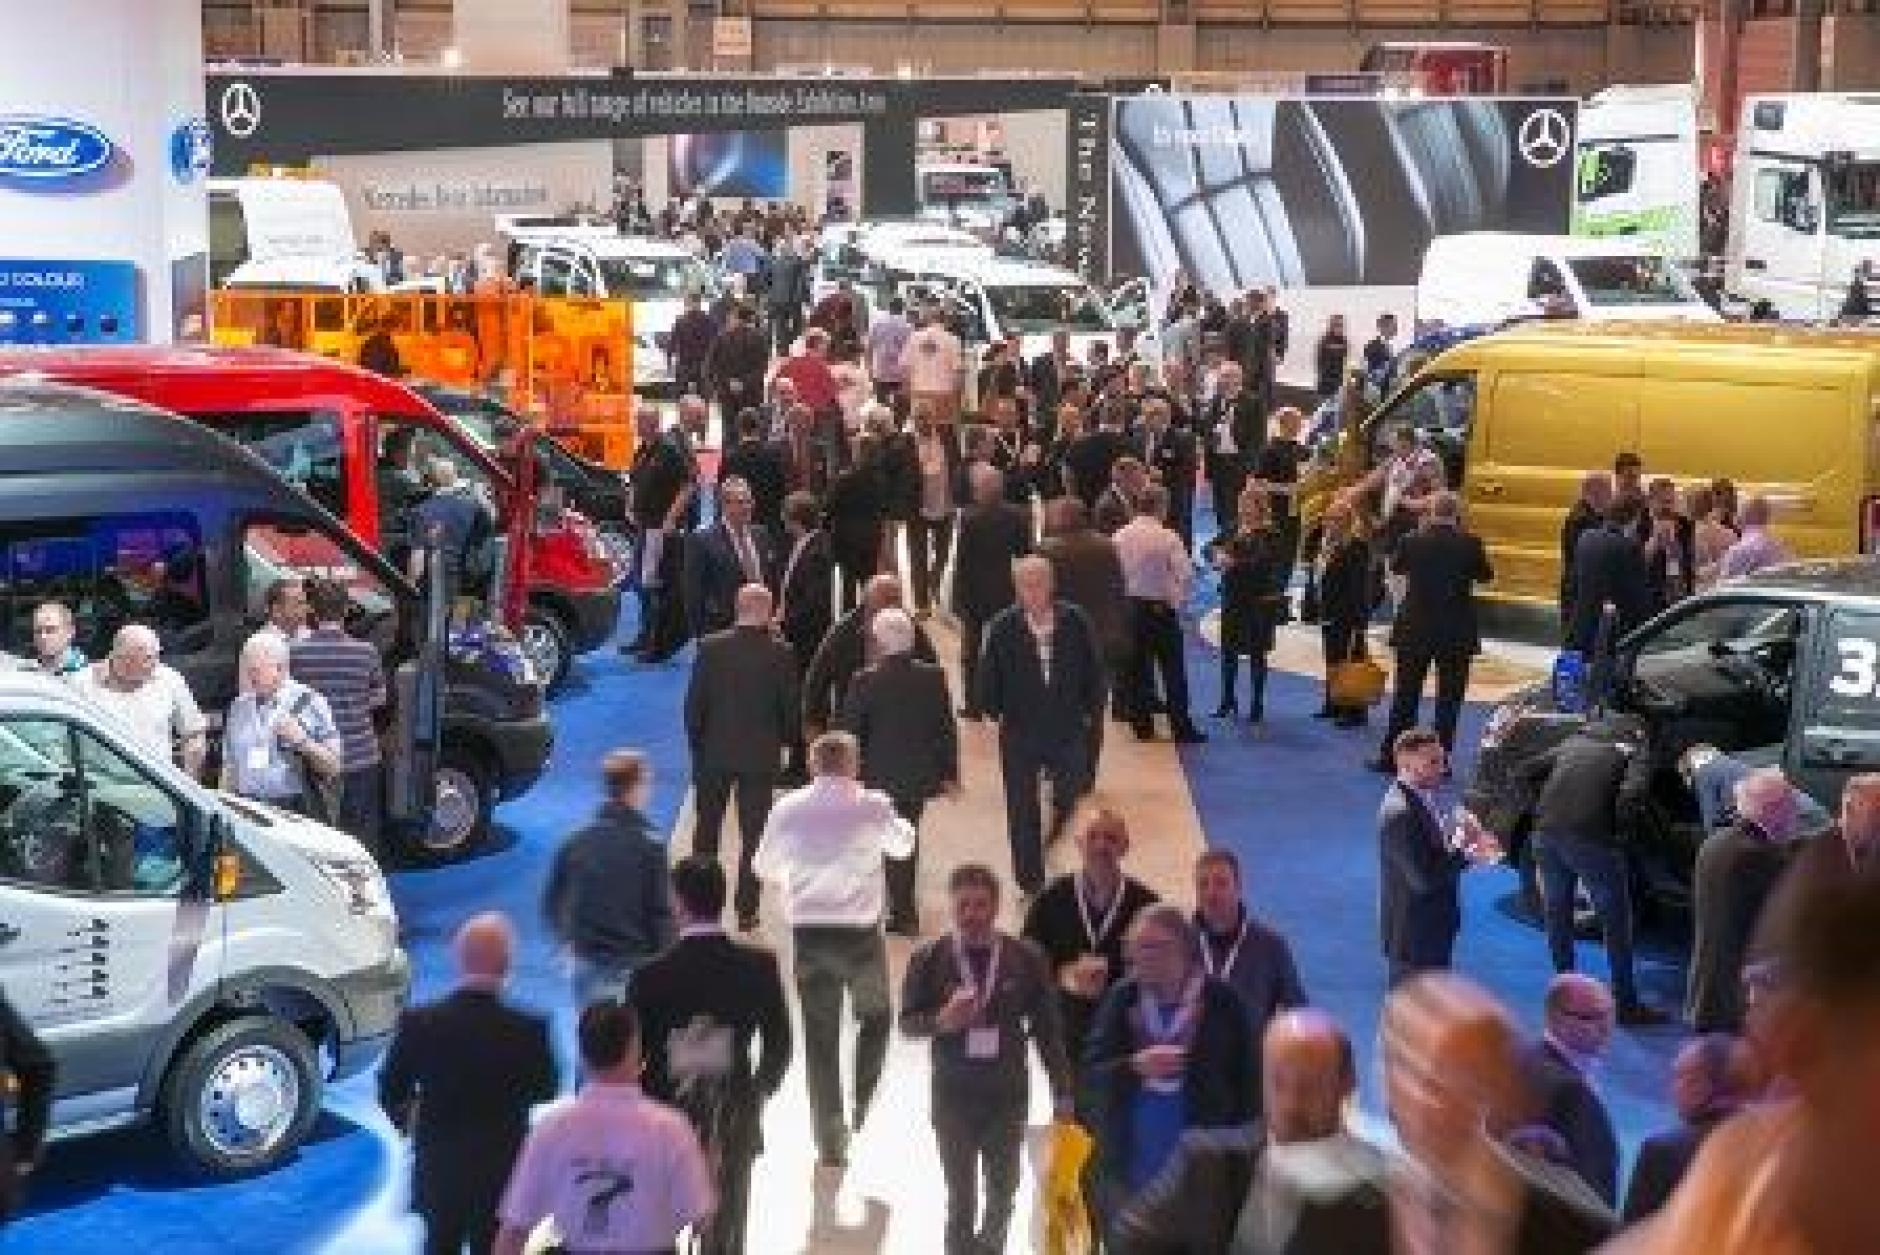 live from the cv show commercial motor the cv show the uk s biggest commercial vehicle show is happening on 25 27 in birmingham this week the com team is at the nec